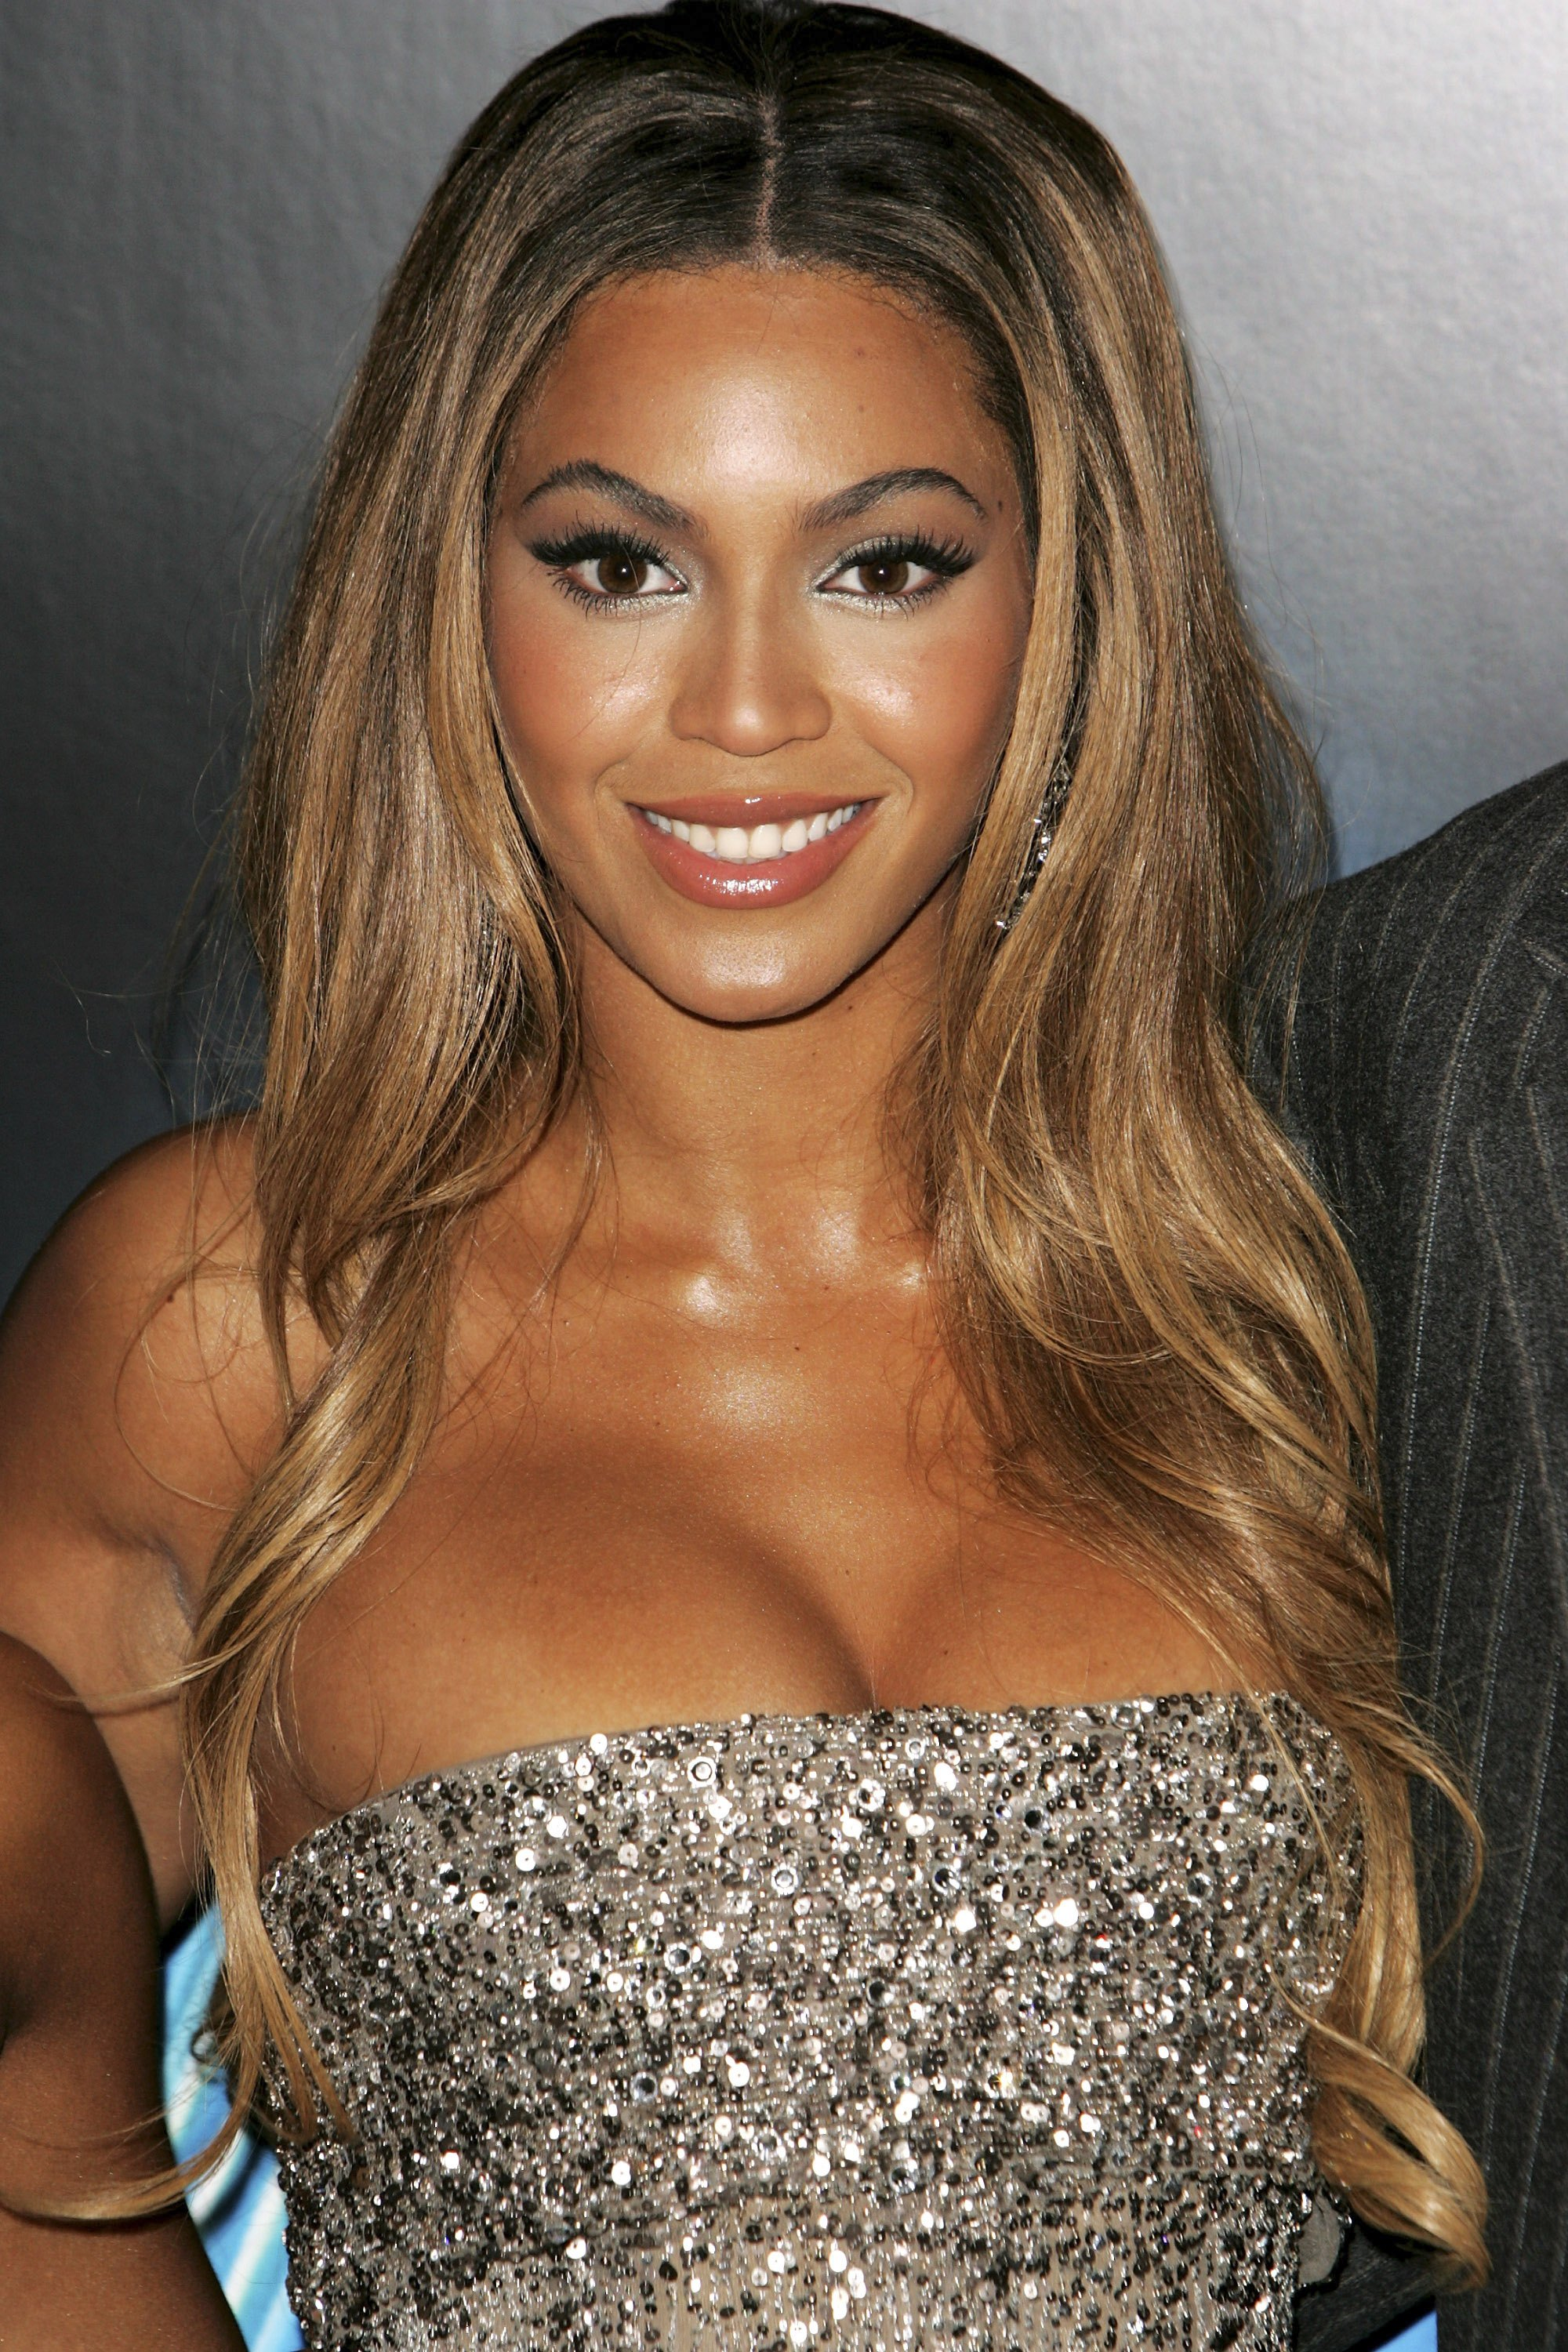 <b>Beyonce Knowles</b> hot photo <b>Beyonce Knowles</b> hot photo ... - beyonce-knowles-photo-6